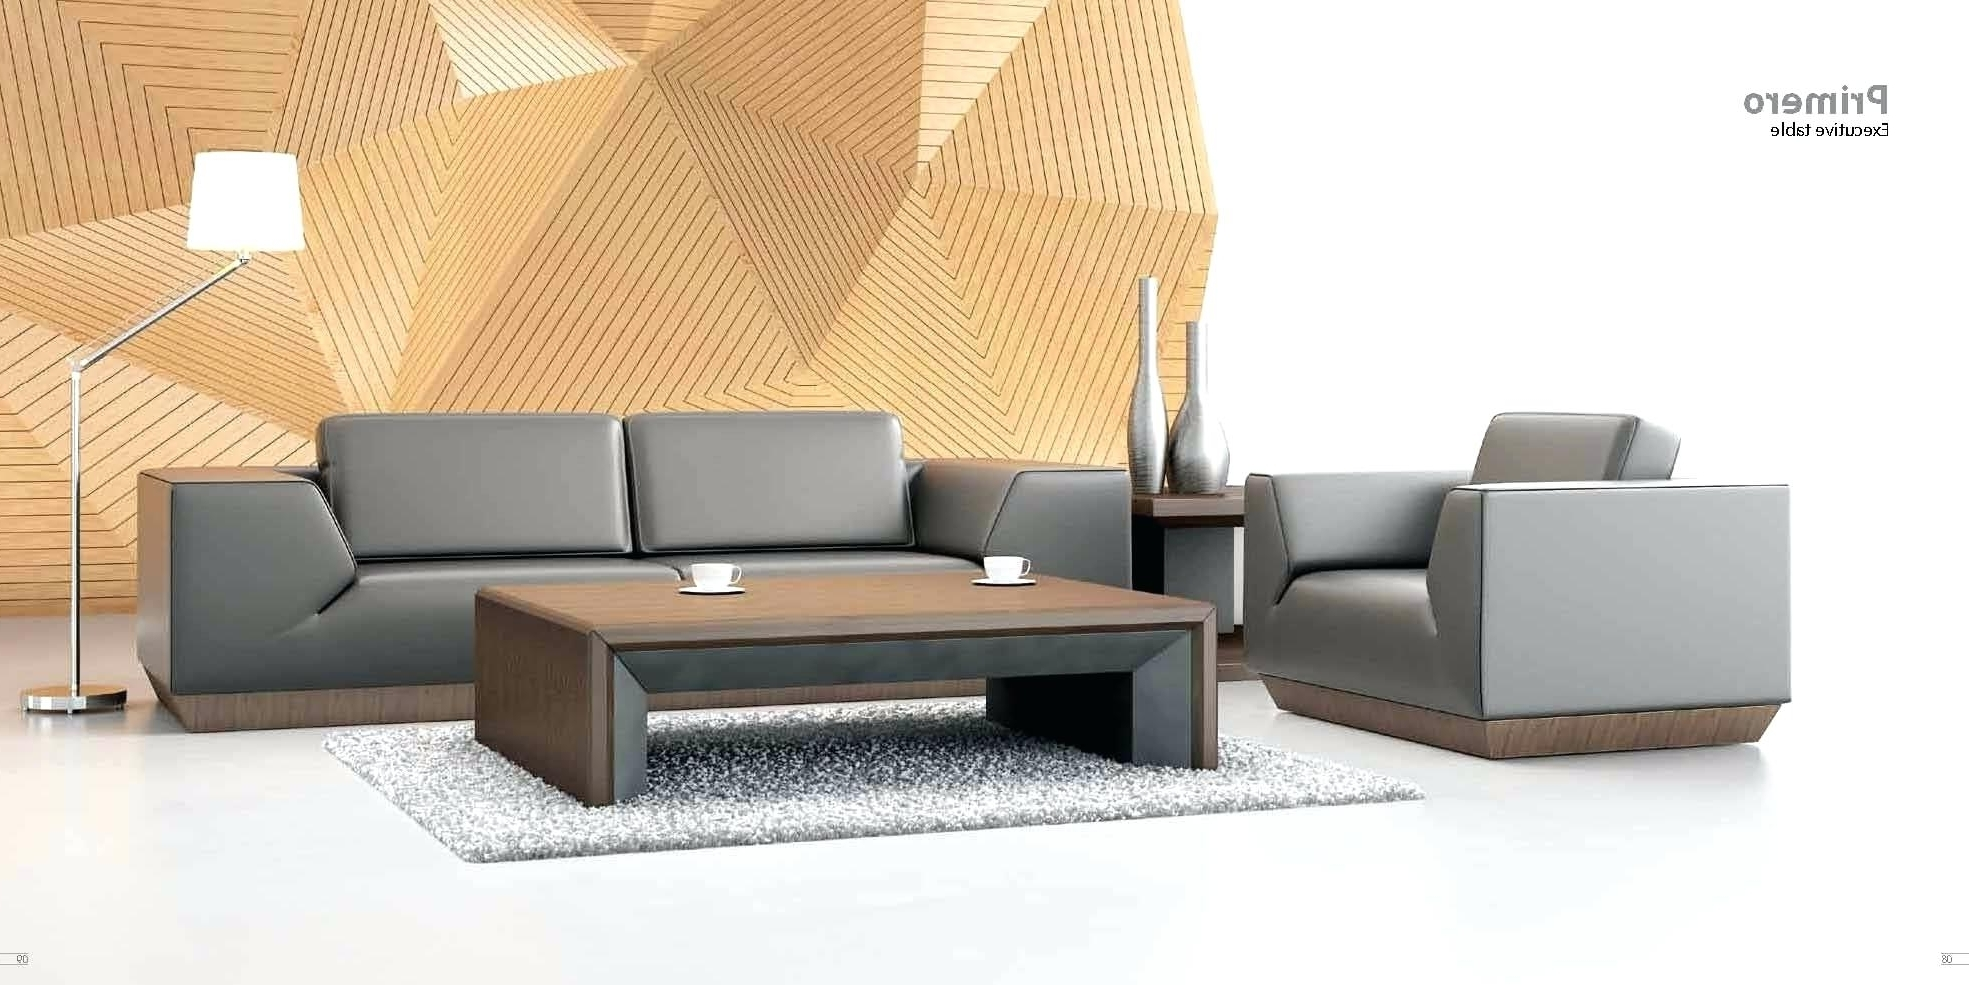 Newest Elegant Sofas And Chairs Inside Chairs : Elegant Sofas And Chairs Full Size Of Sofa King Armchair (View 19 of 20)